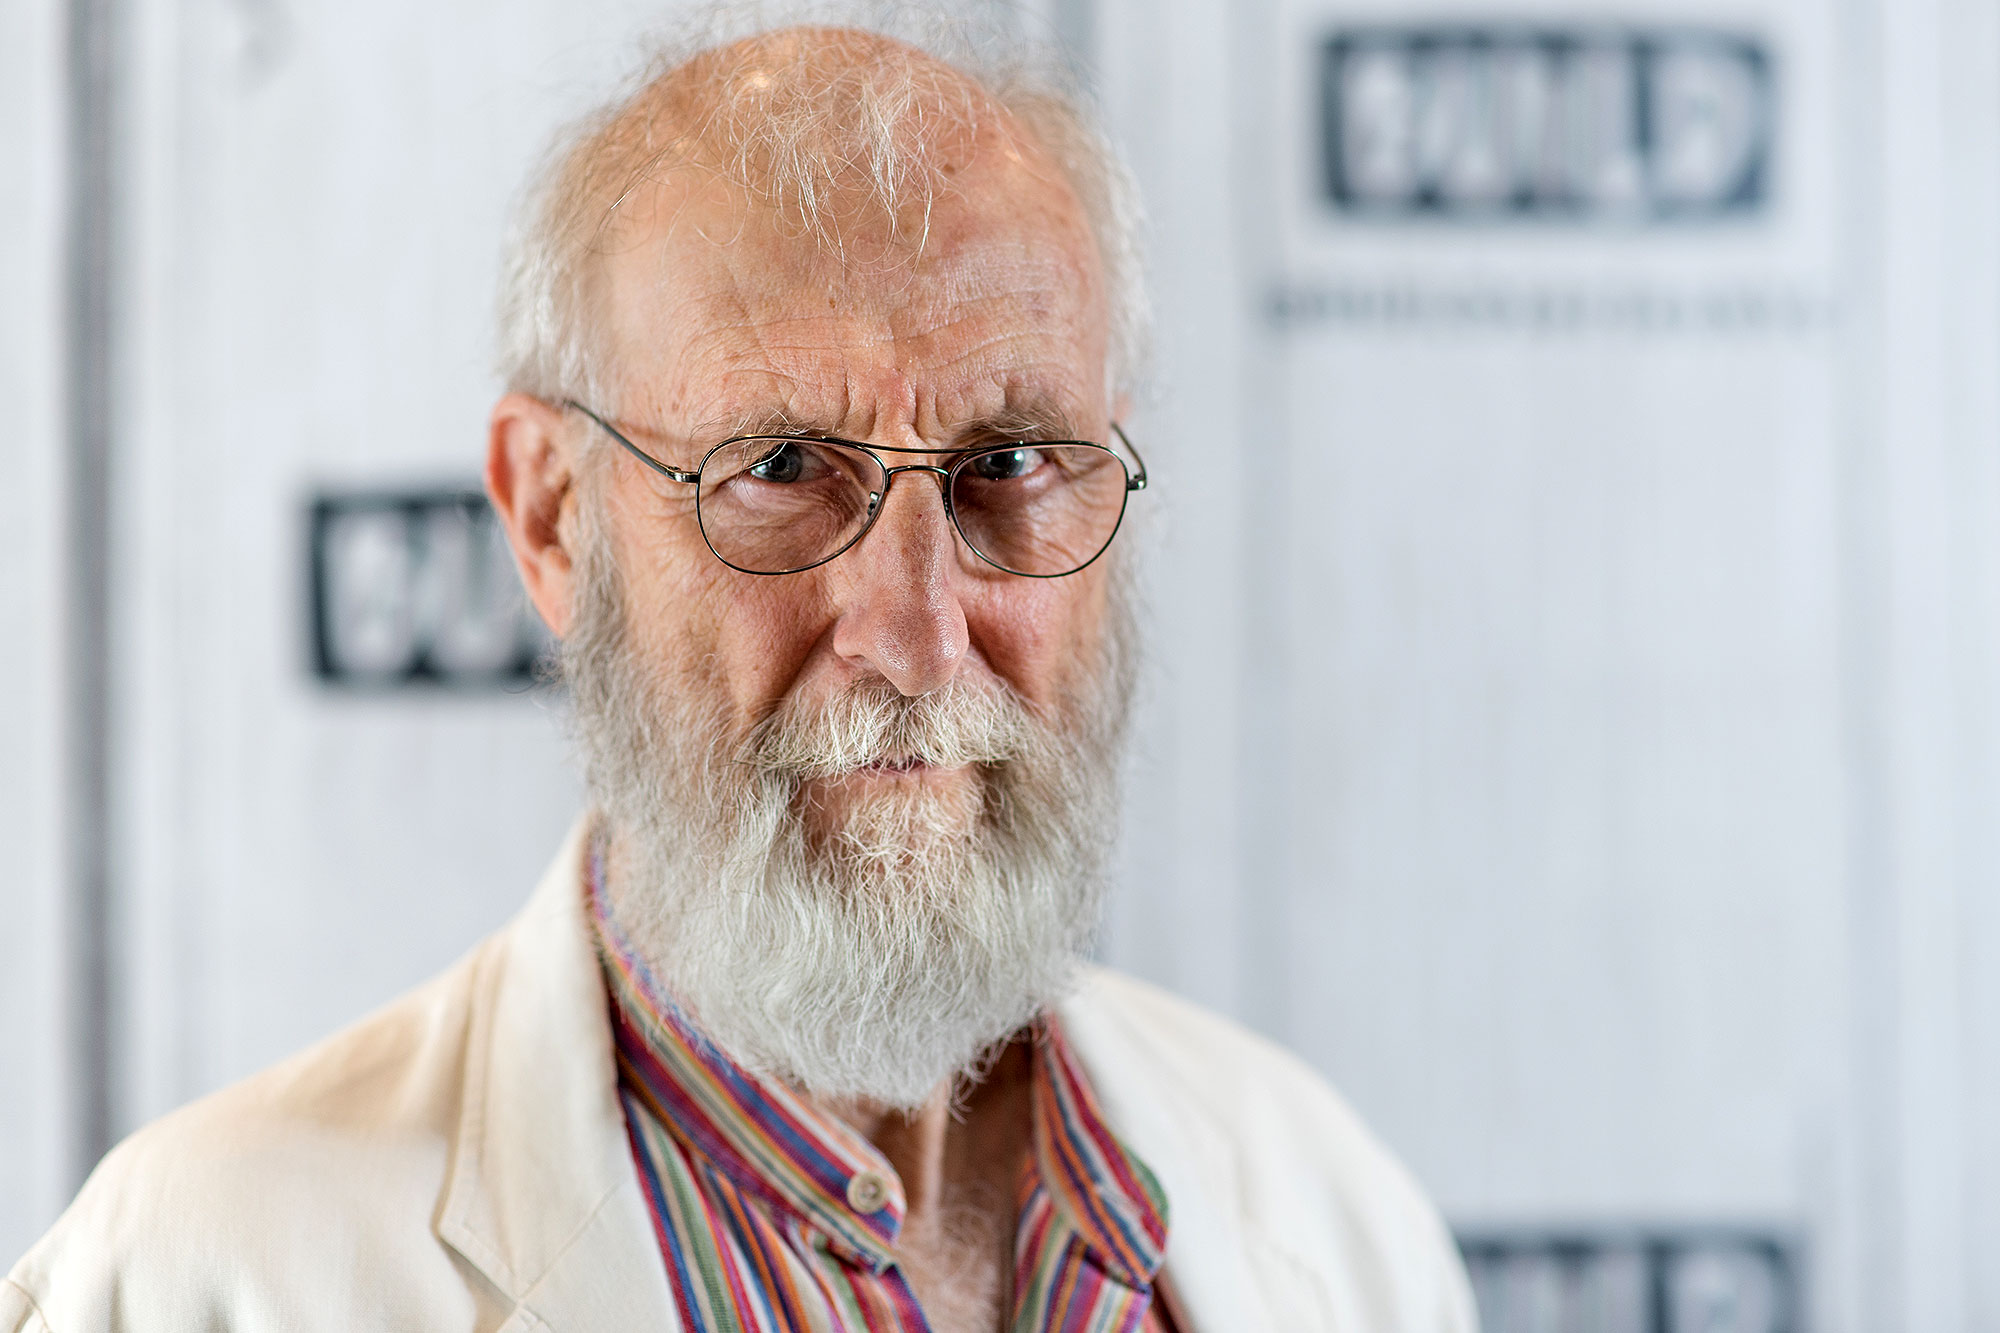 james-cromwell-seaworld-arrest